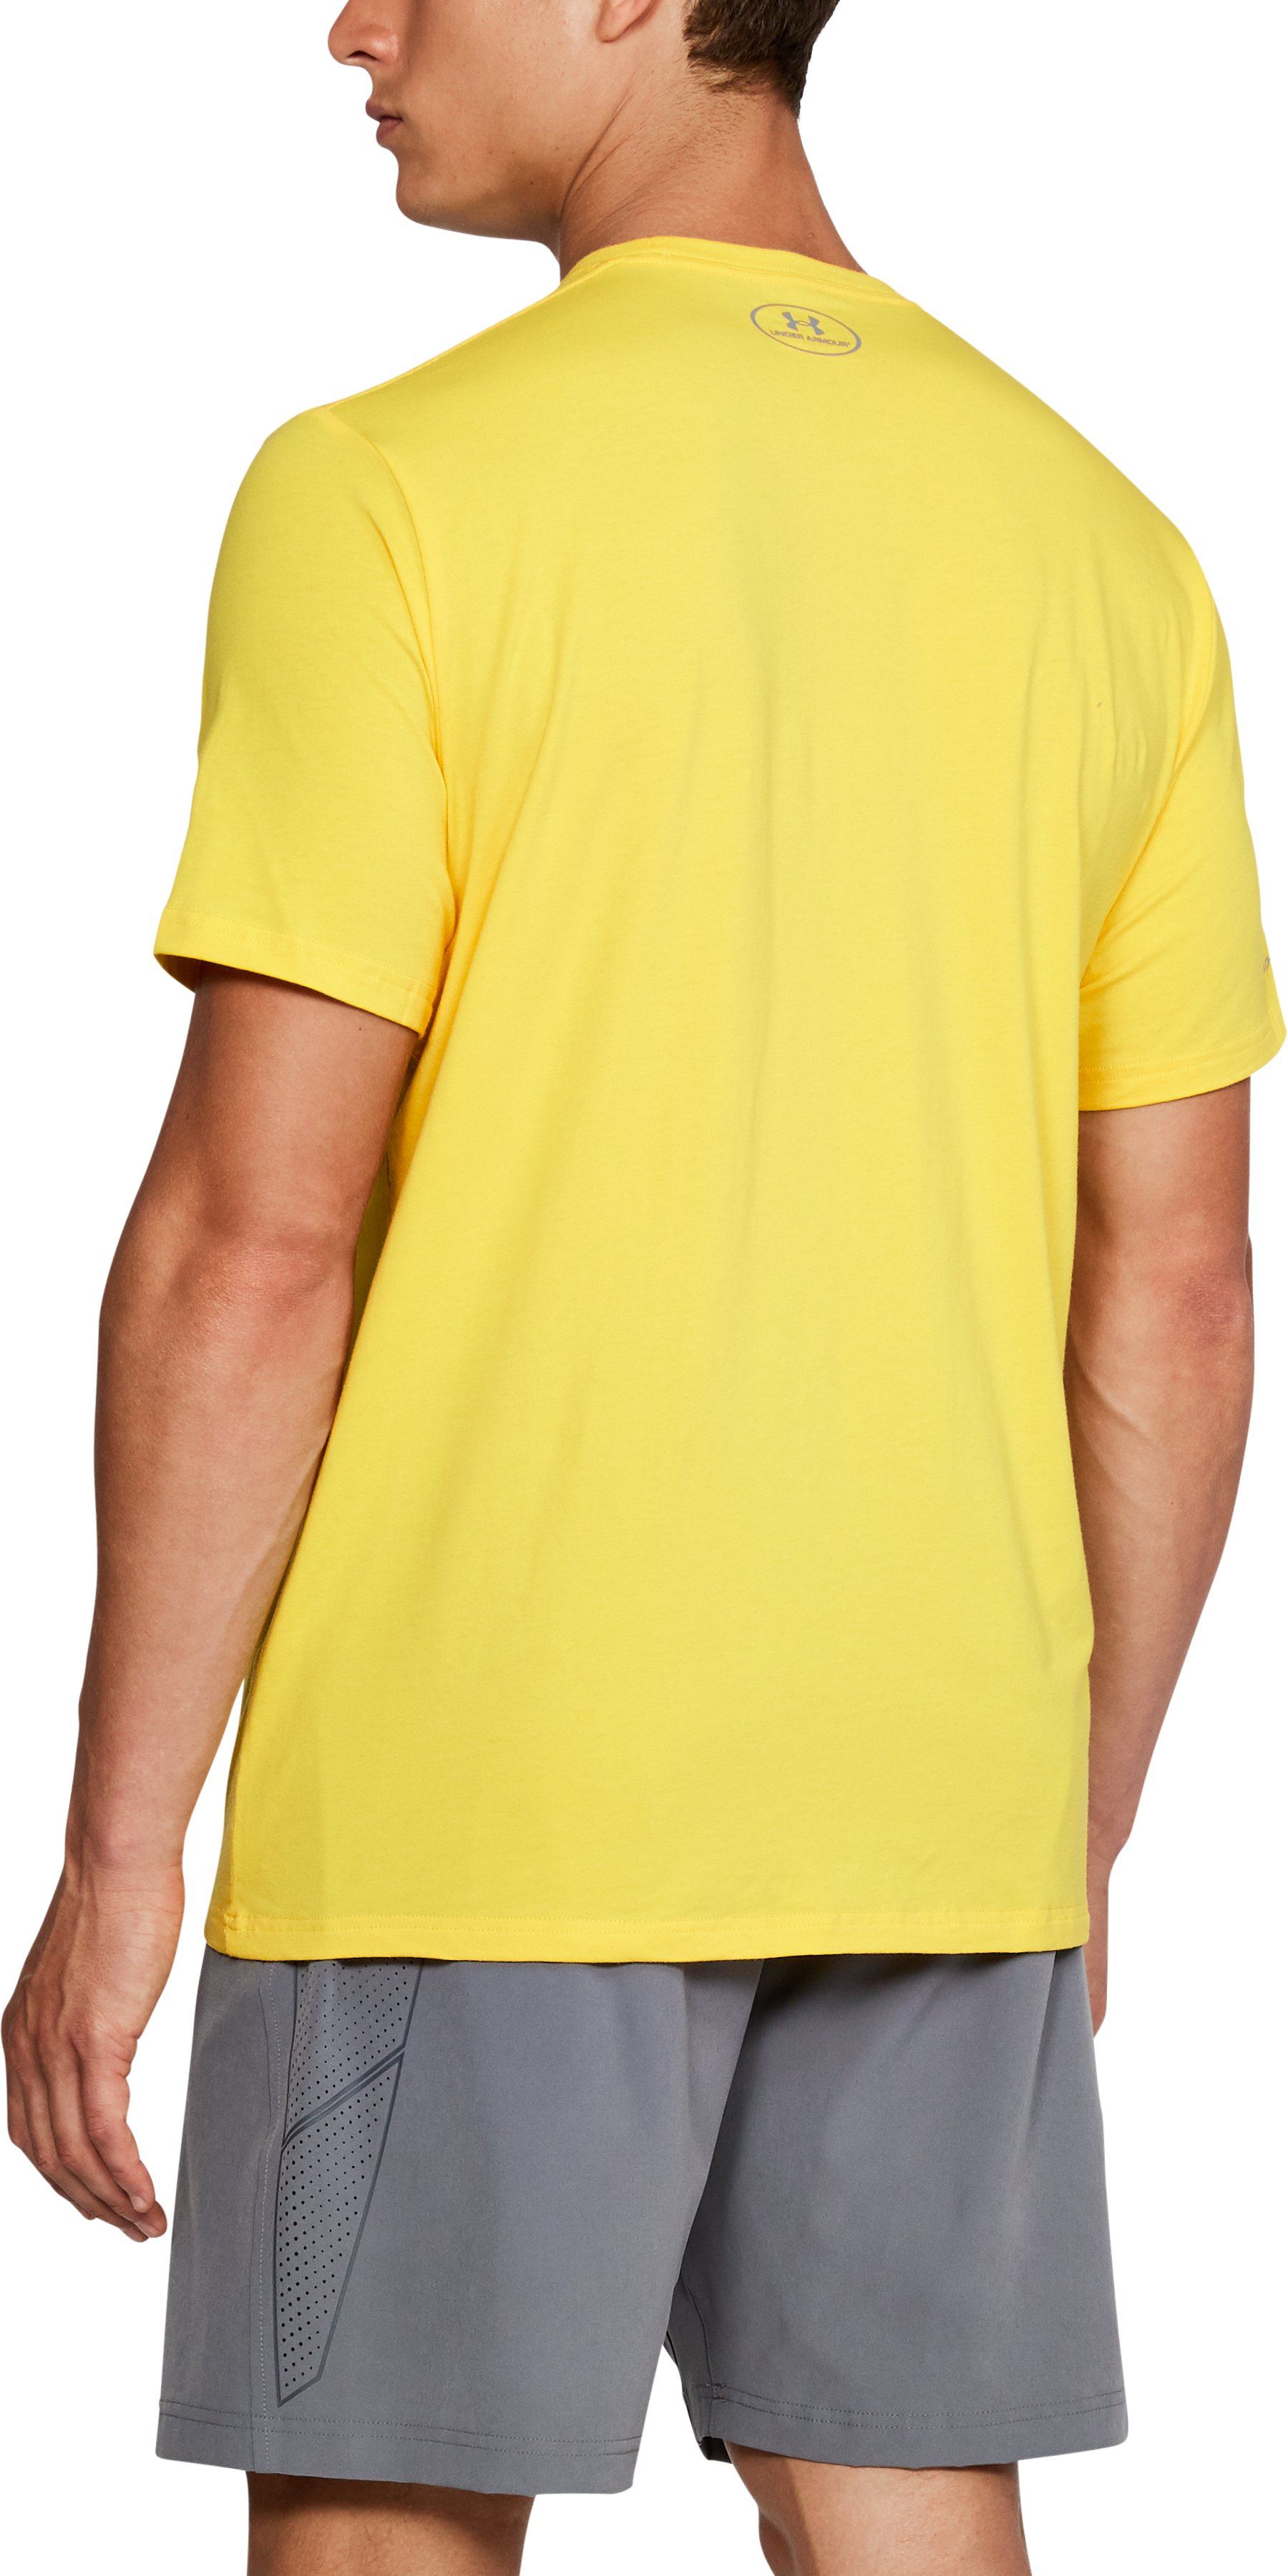 Men's Maryland Charged Cotton® T-Shirt, Taxi, undefined